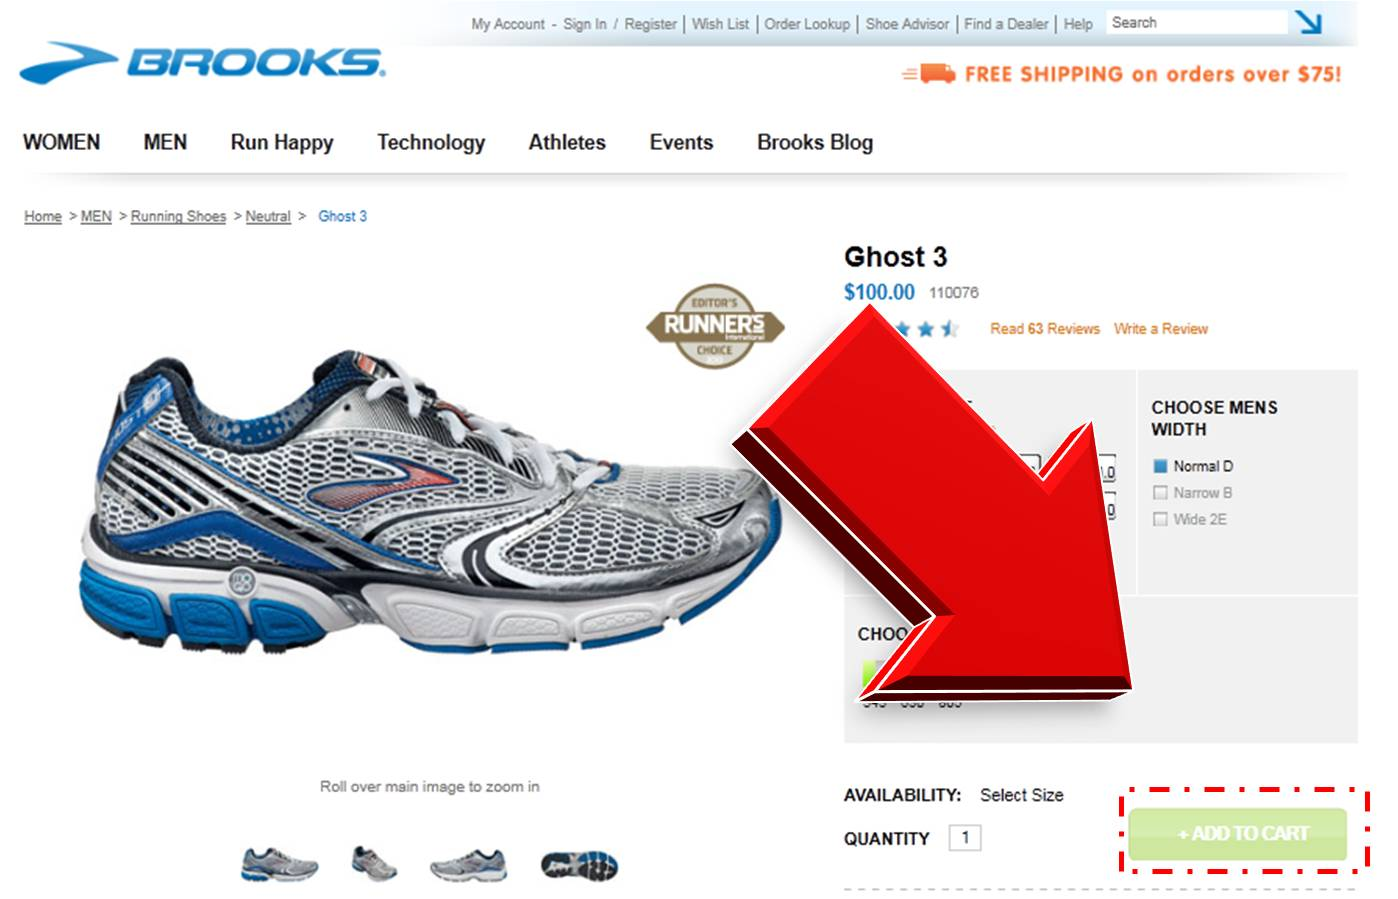 This includes tracking mentions of Brooks Running coupons on social media outlets like Twitter and Instagram, visiting blogs and forums related to Brooks Running products and services, and scouring top deal sites for the latest Brooks Running promo codes.